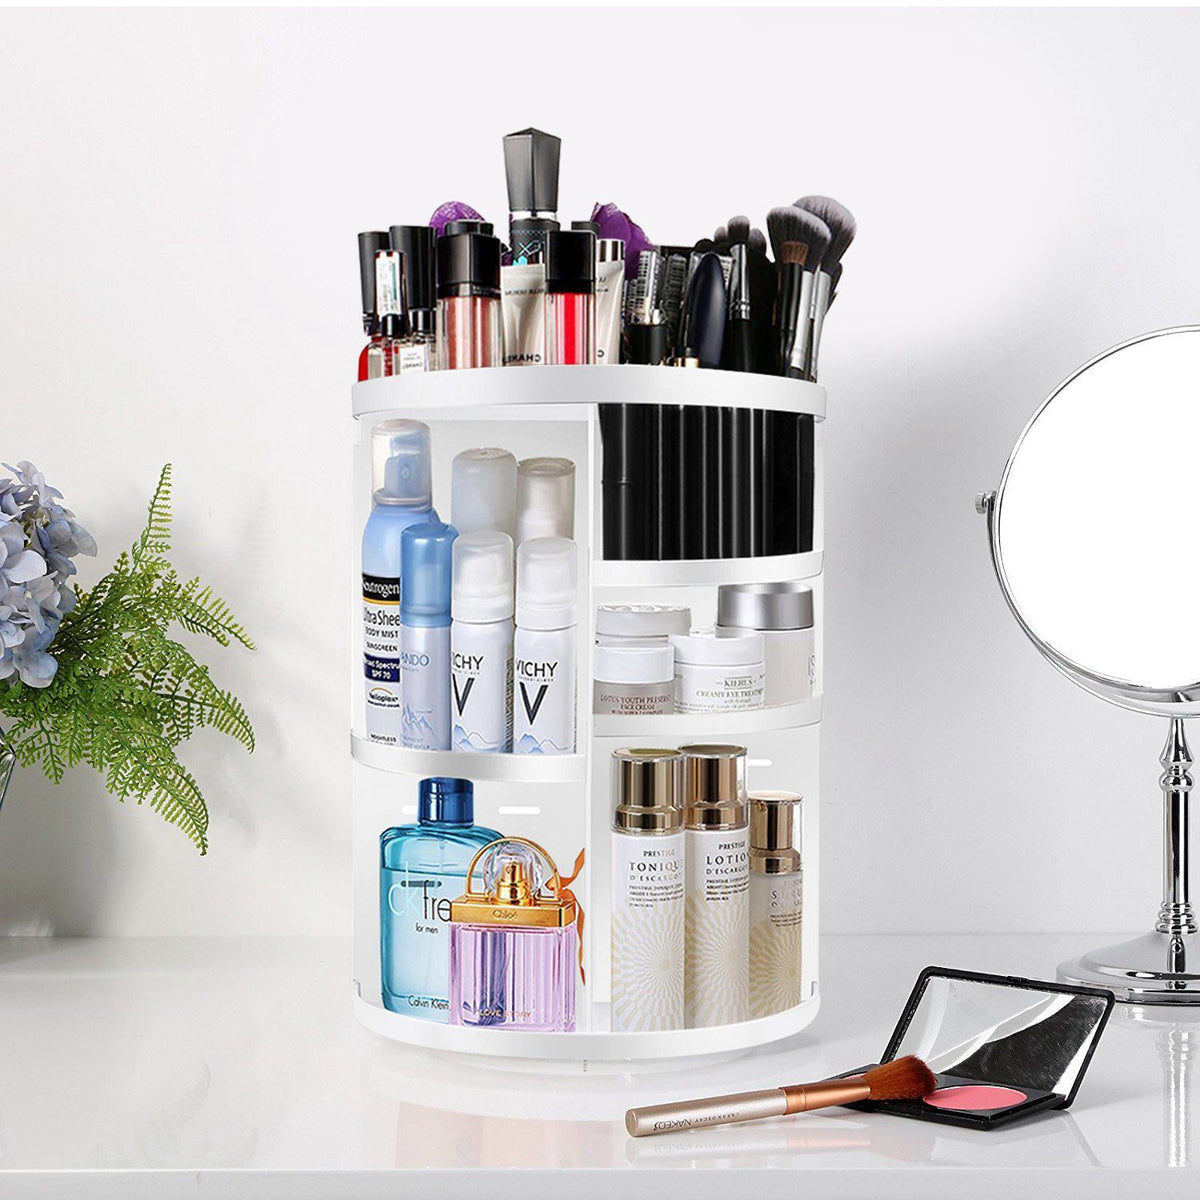 Makeup Organizer 360 Degree Rotational - The Multi-Function Cosmetic Storage   Roxee